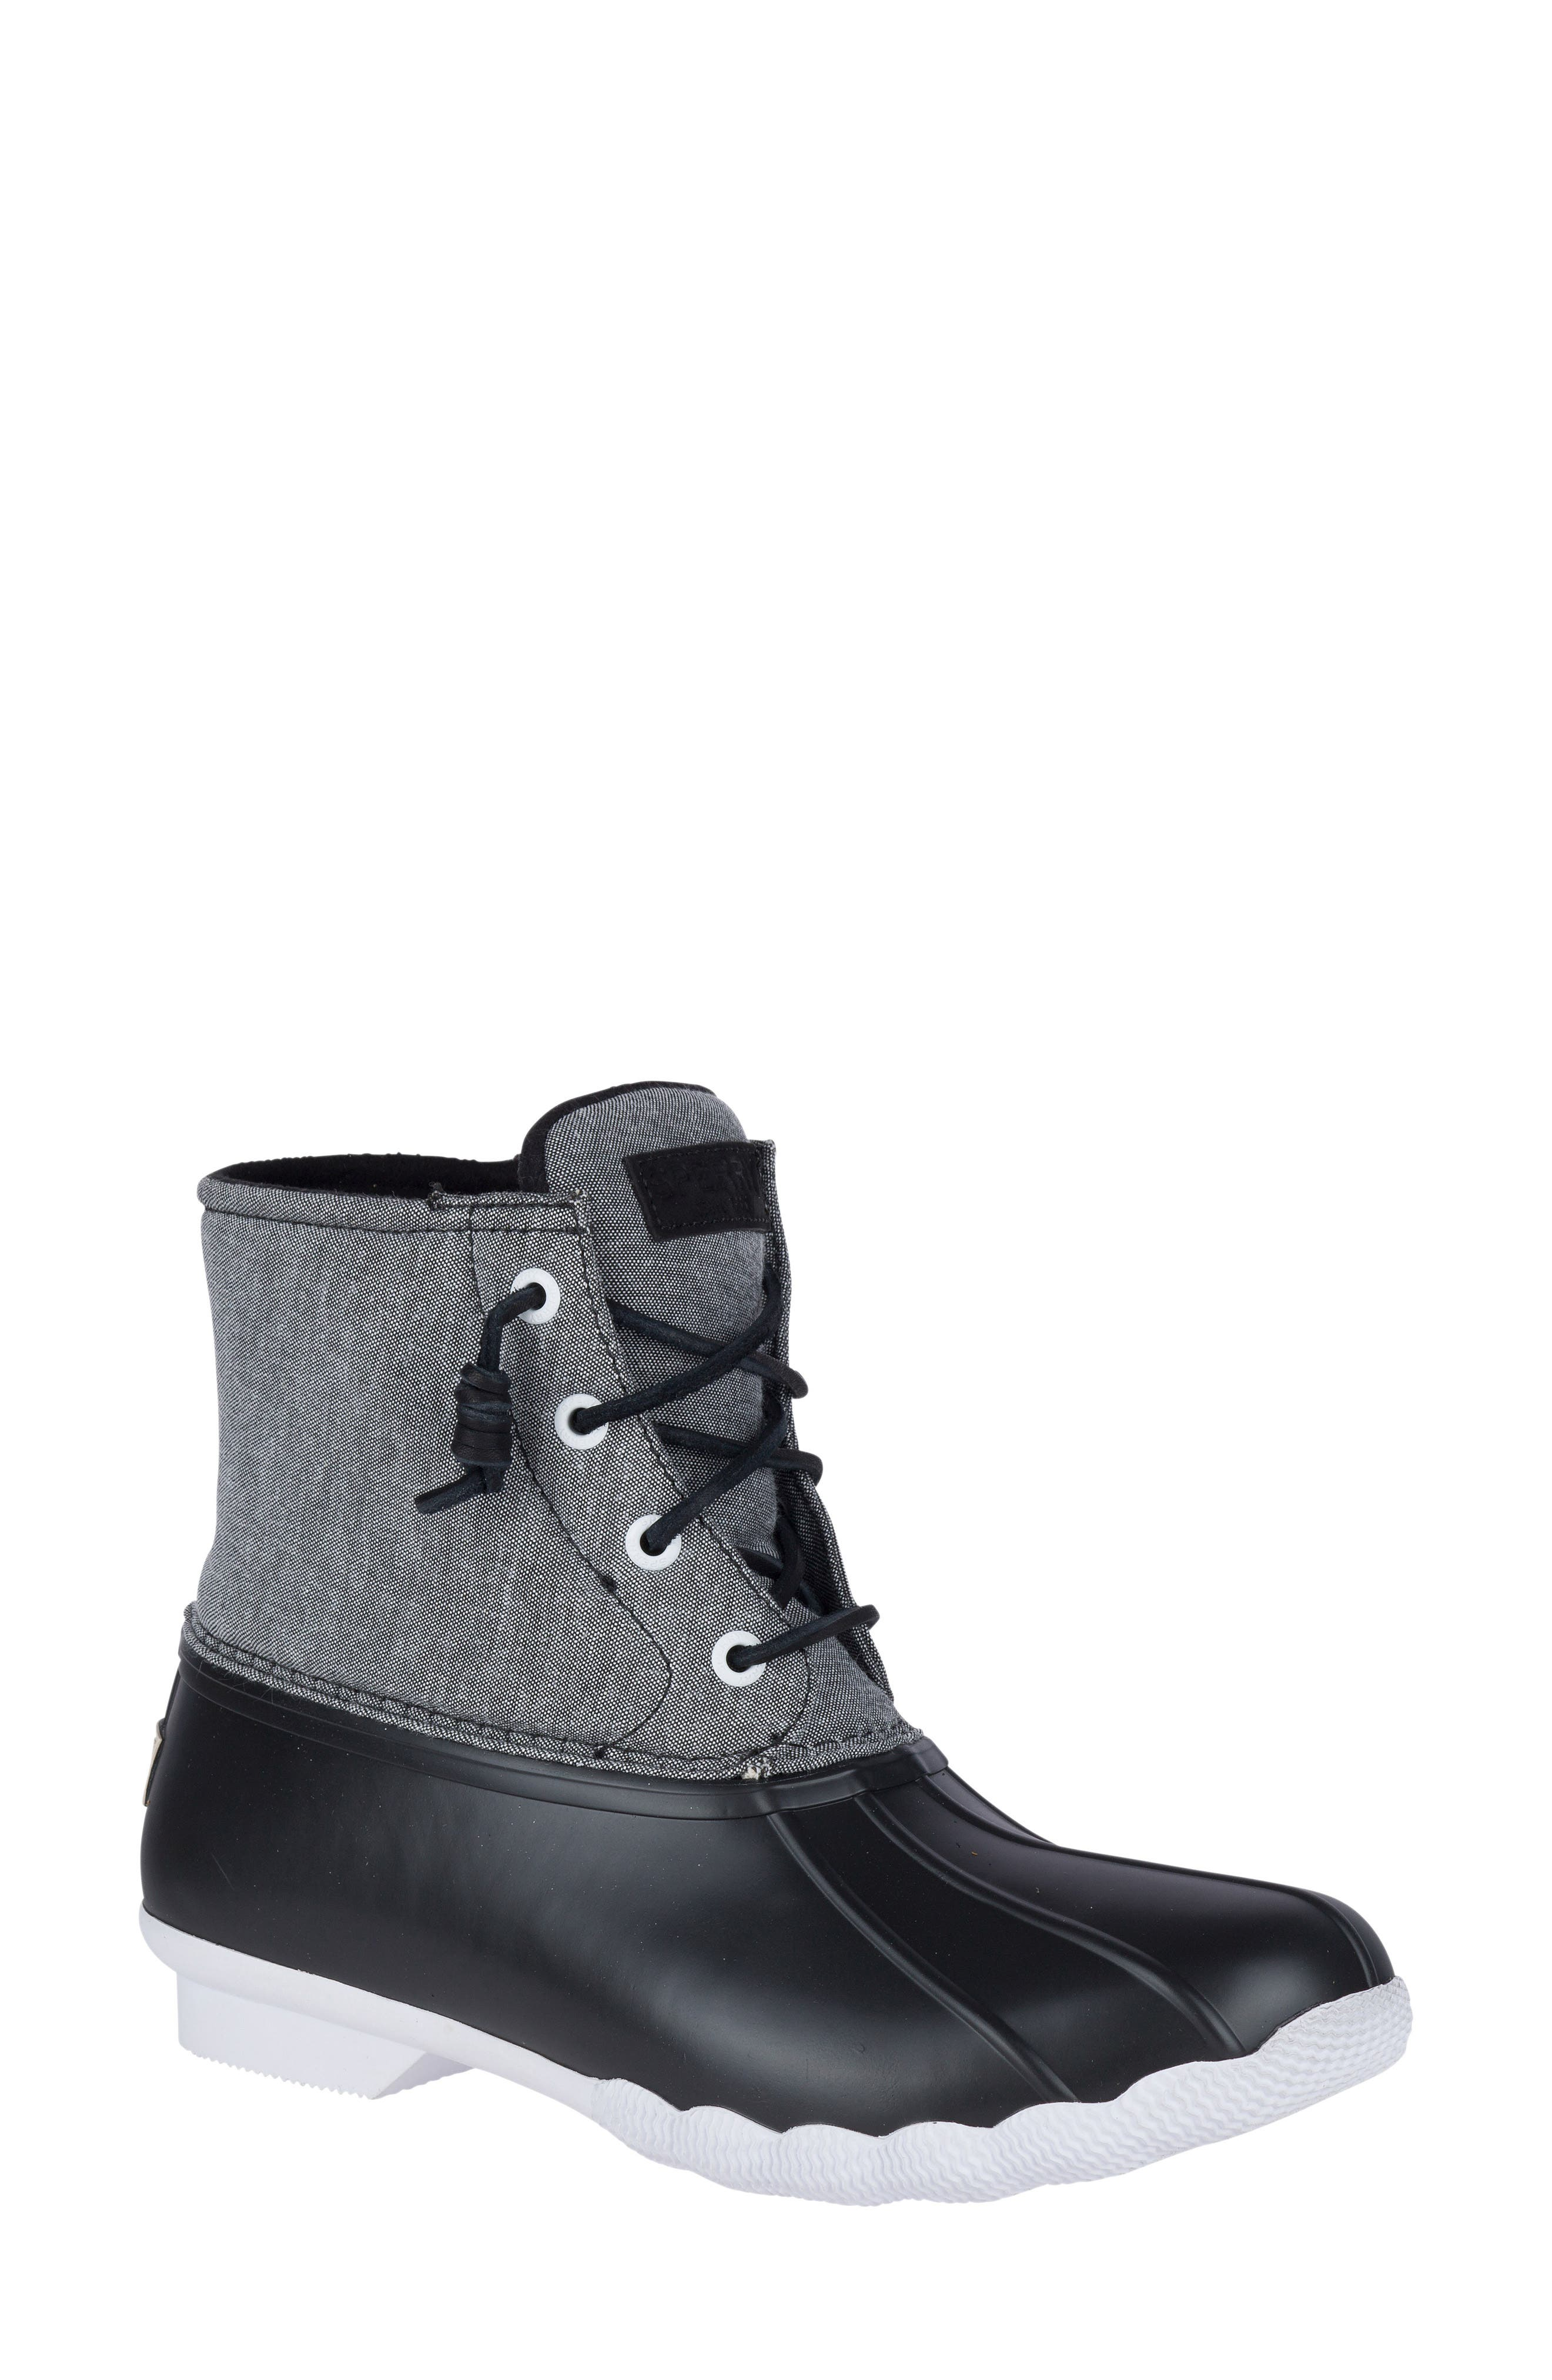 Alternate Image 1 Selected - Sperry 'Saltwater' Waterproof Rain Boot (Women)